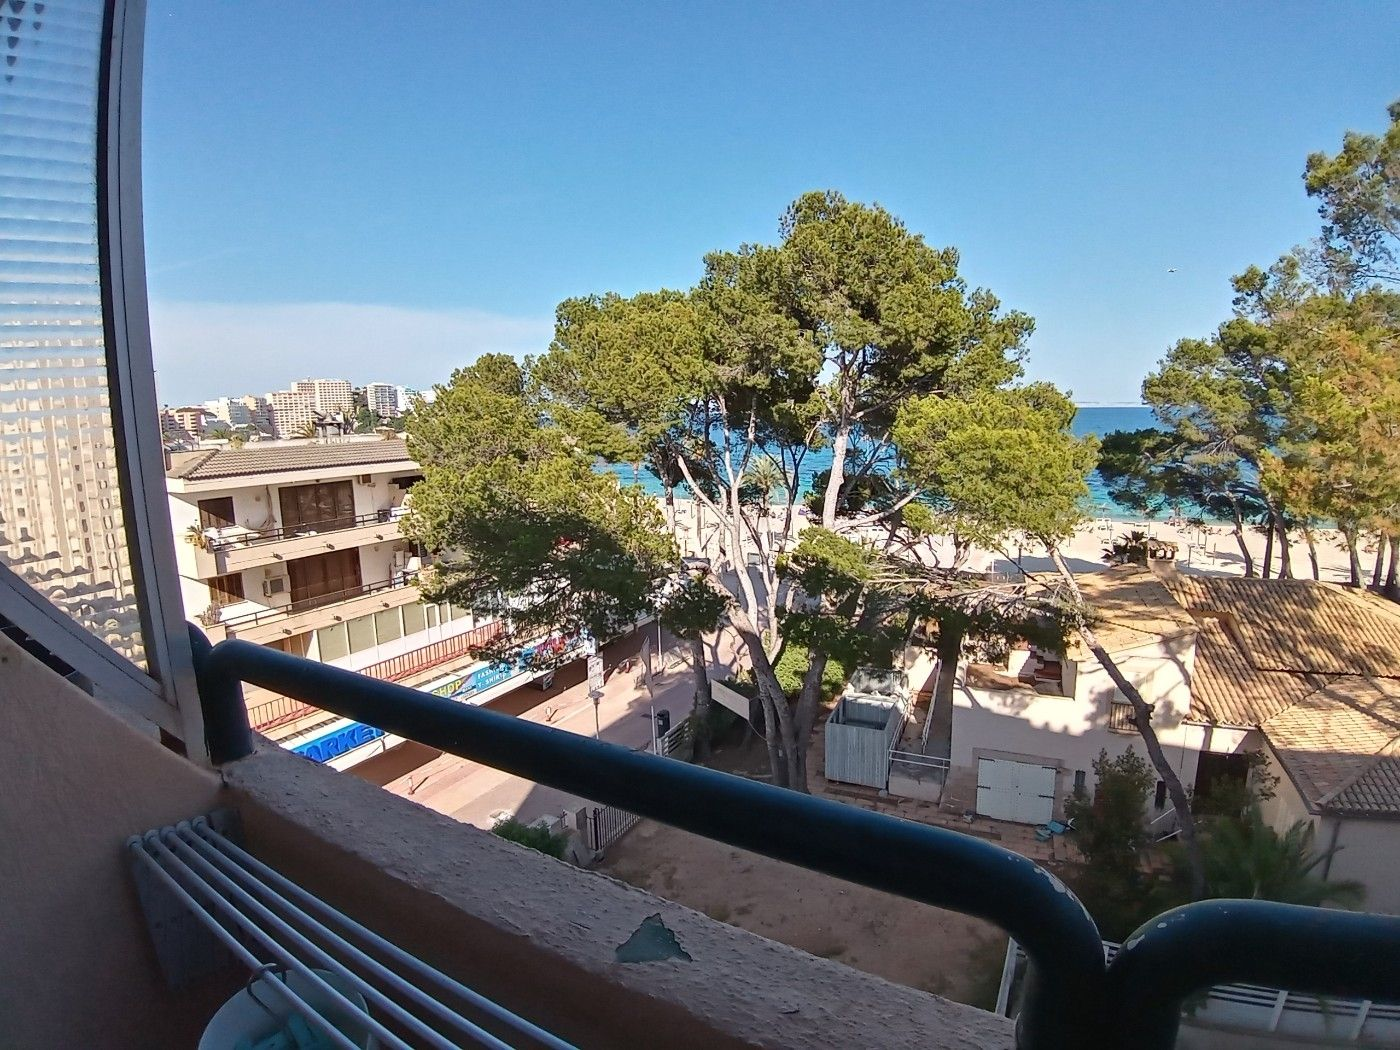 Rent Apartment in Avenida de magaluf, 10. Frente al momentum plaza !